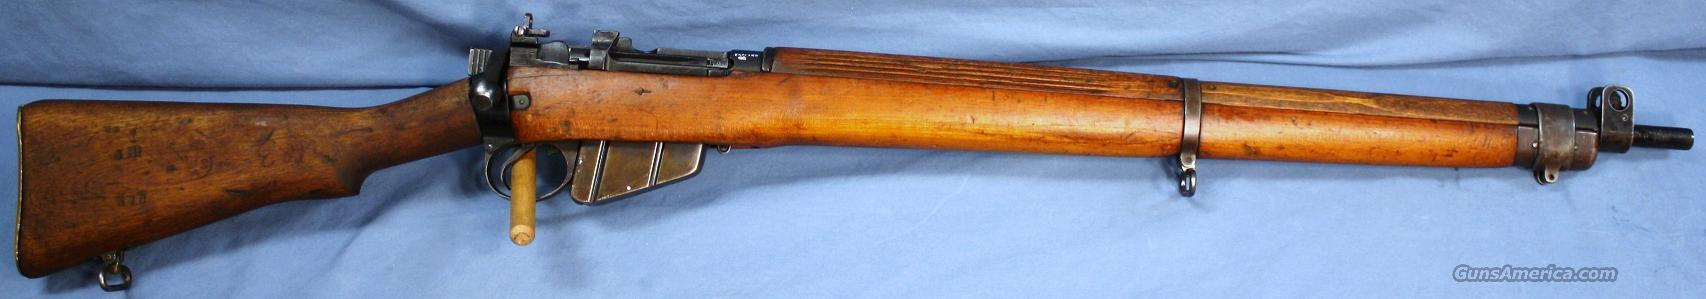 Enfield No.4 MKI WWII Bolt Action Rifle 303 British  Guns > Rifles > Enfield Rifle